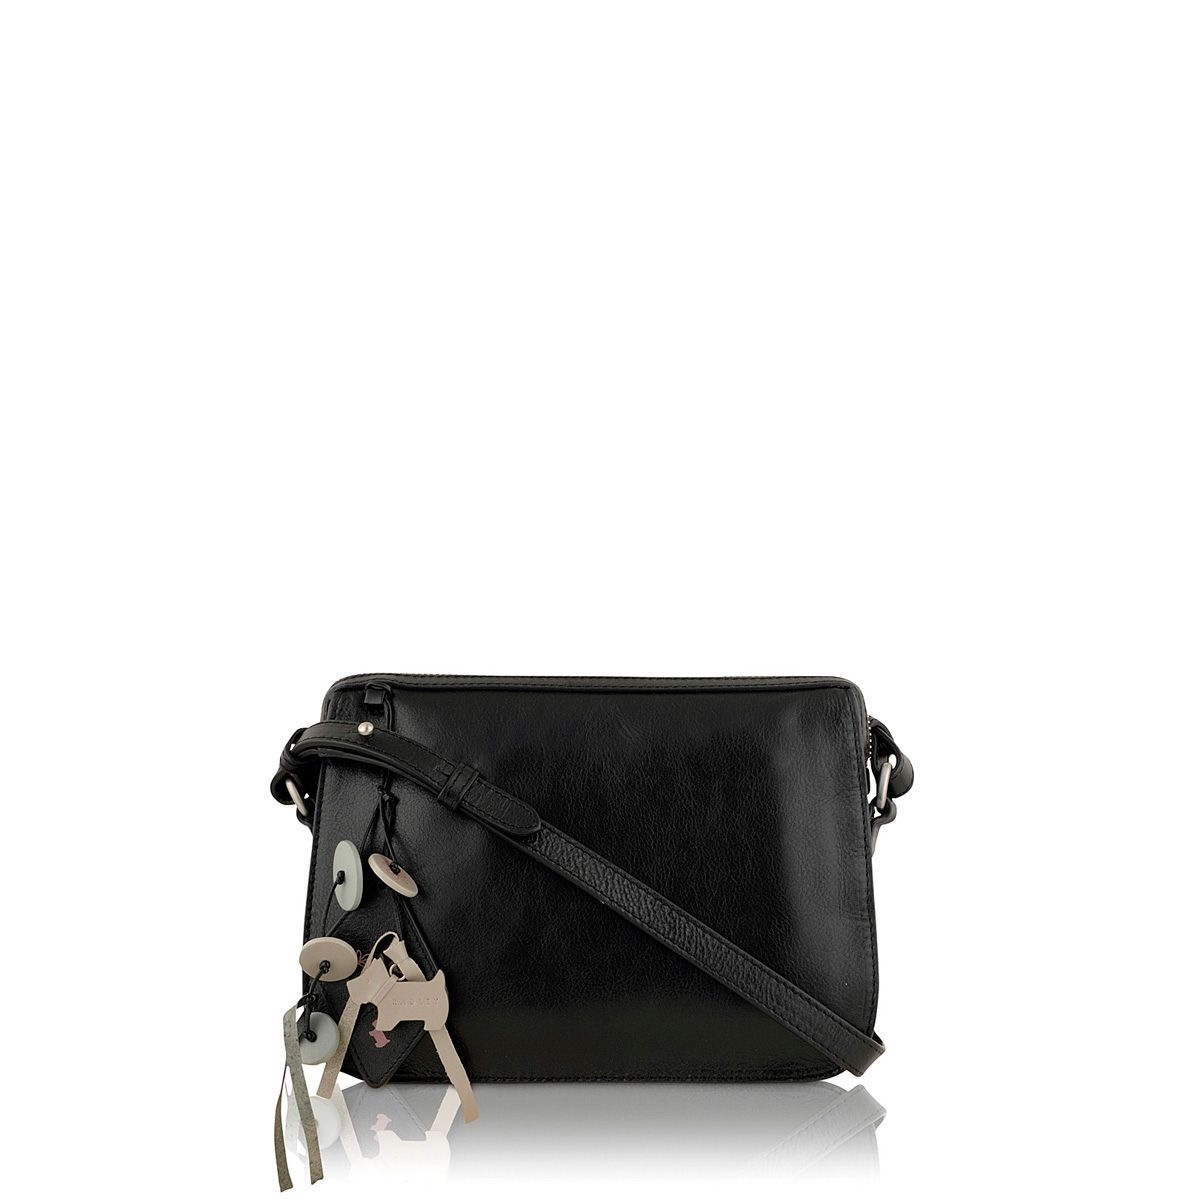 Maiden black small leather cross body bag